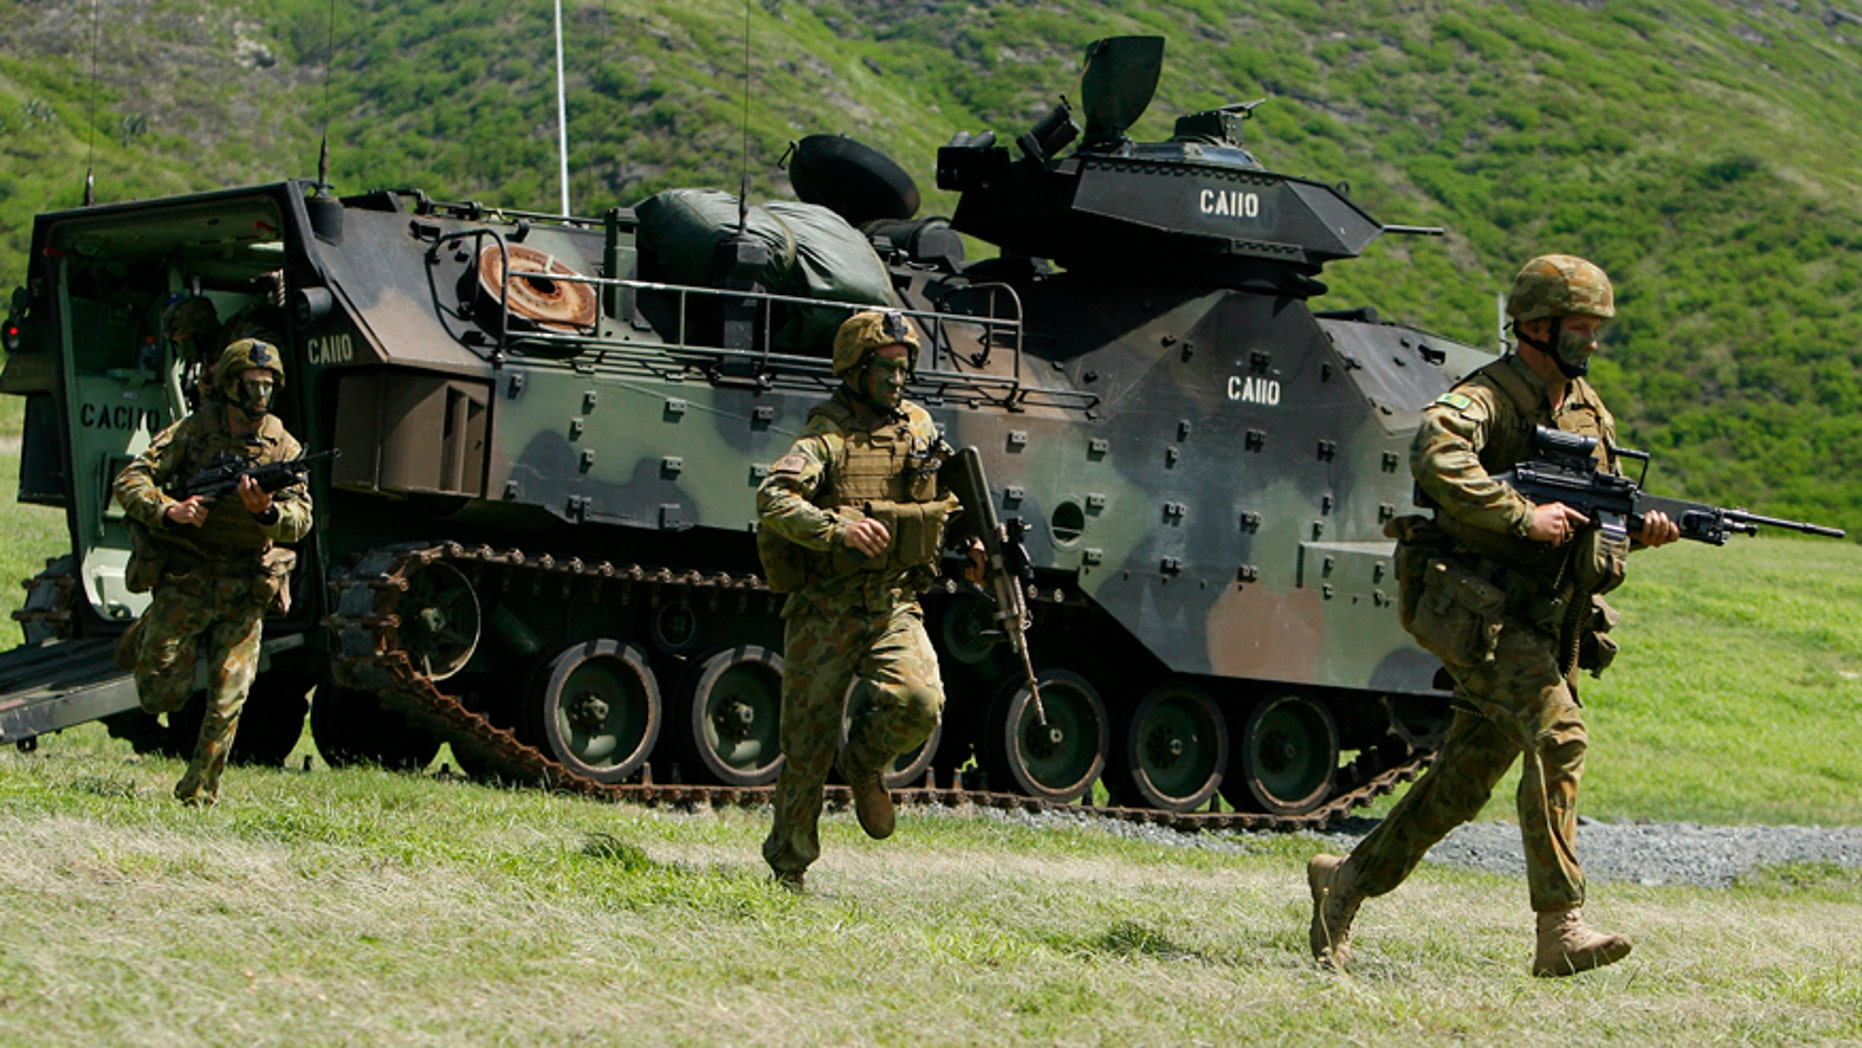 July 29, 2014: Australian Army soldiers from the 5th Battalion, Royal Australian Regiment run out of an assault amphibious vehicle (AAV) during a live fire exercise at Marine Corps Base Hawaii during the multi-national military exercise RIMPAC in Kaneohe, Hawaii.